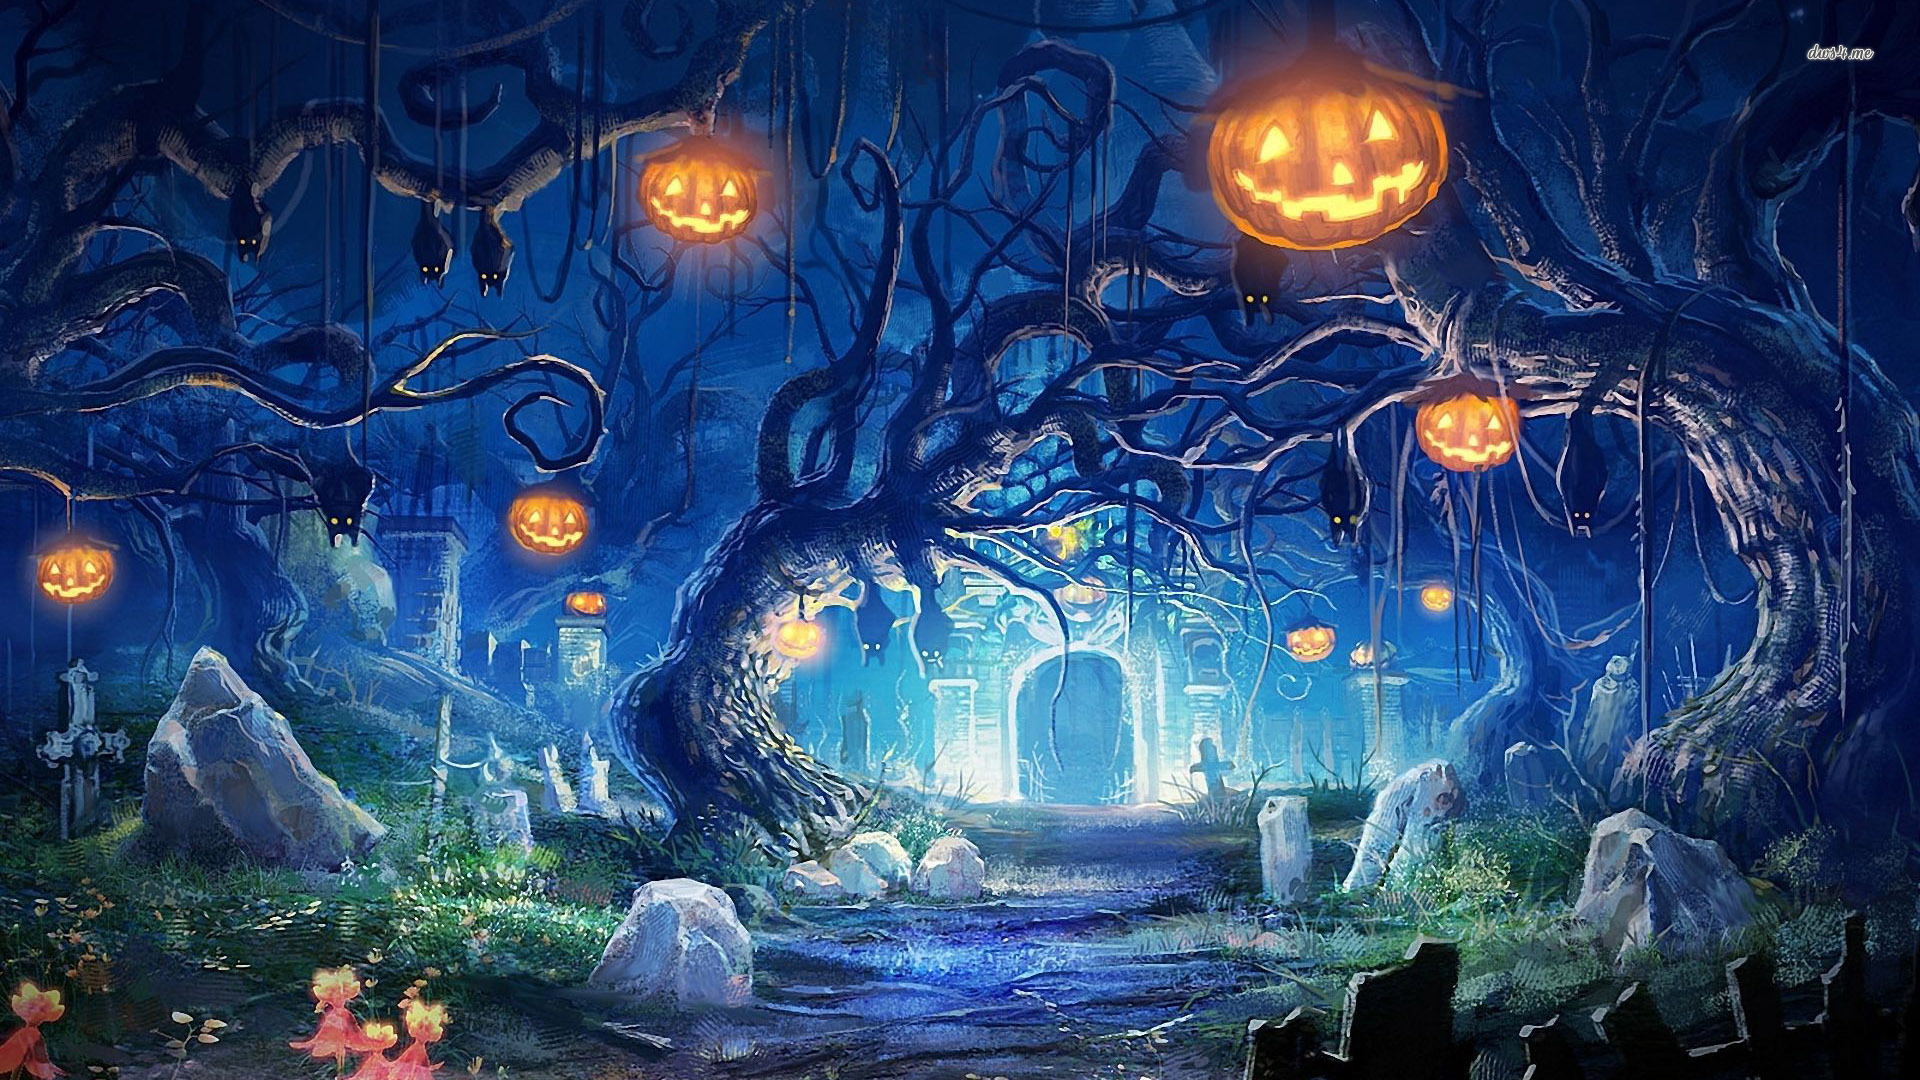 Cemetery clipart scenery. Halloween night in the